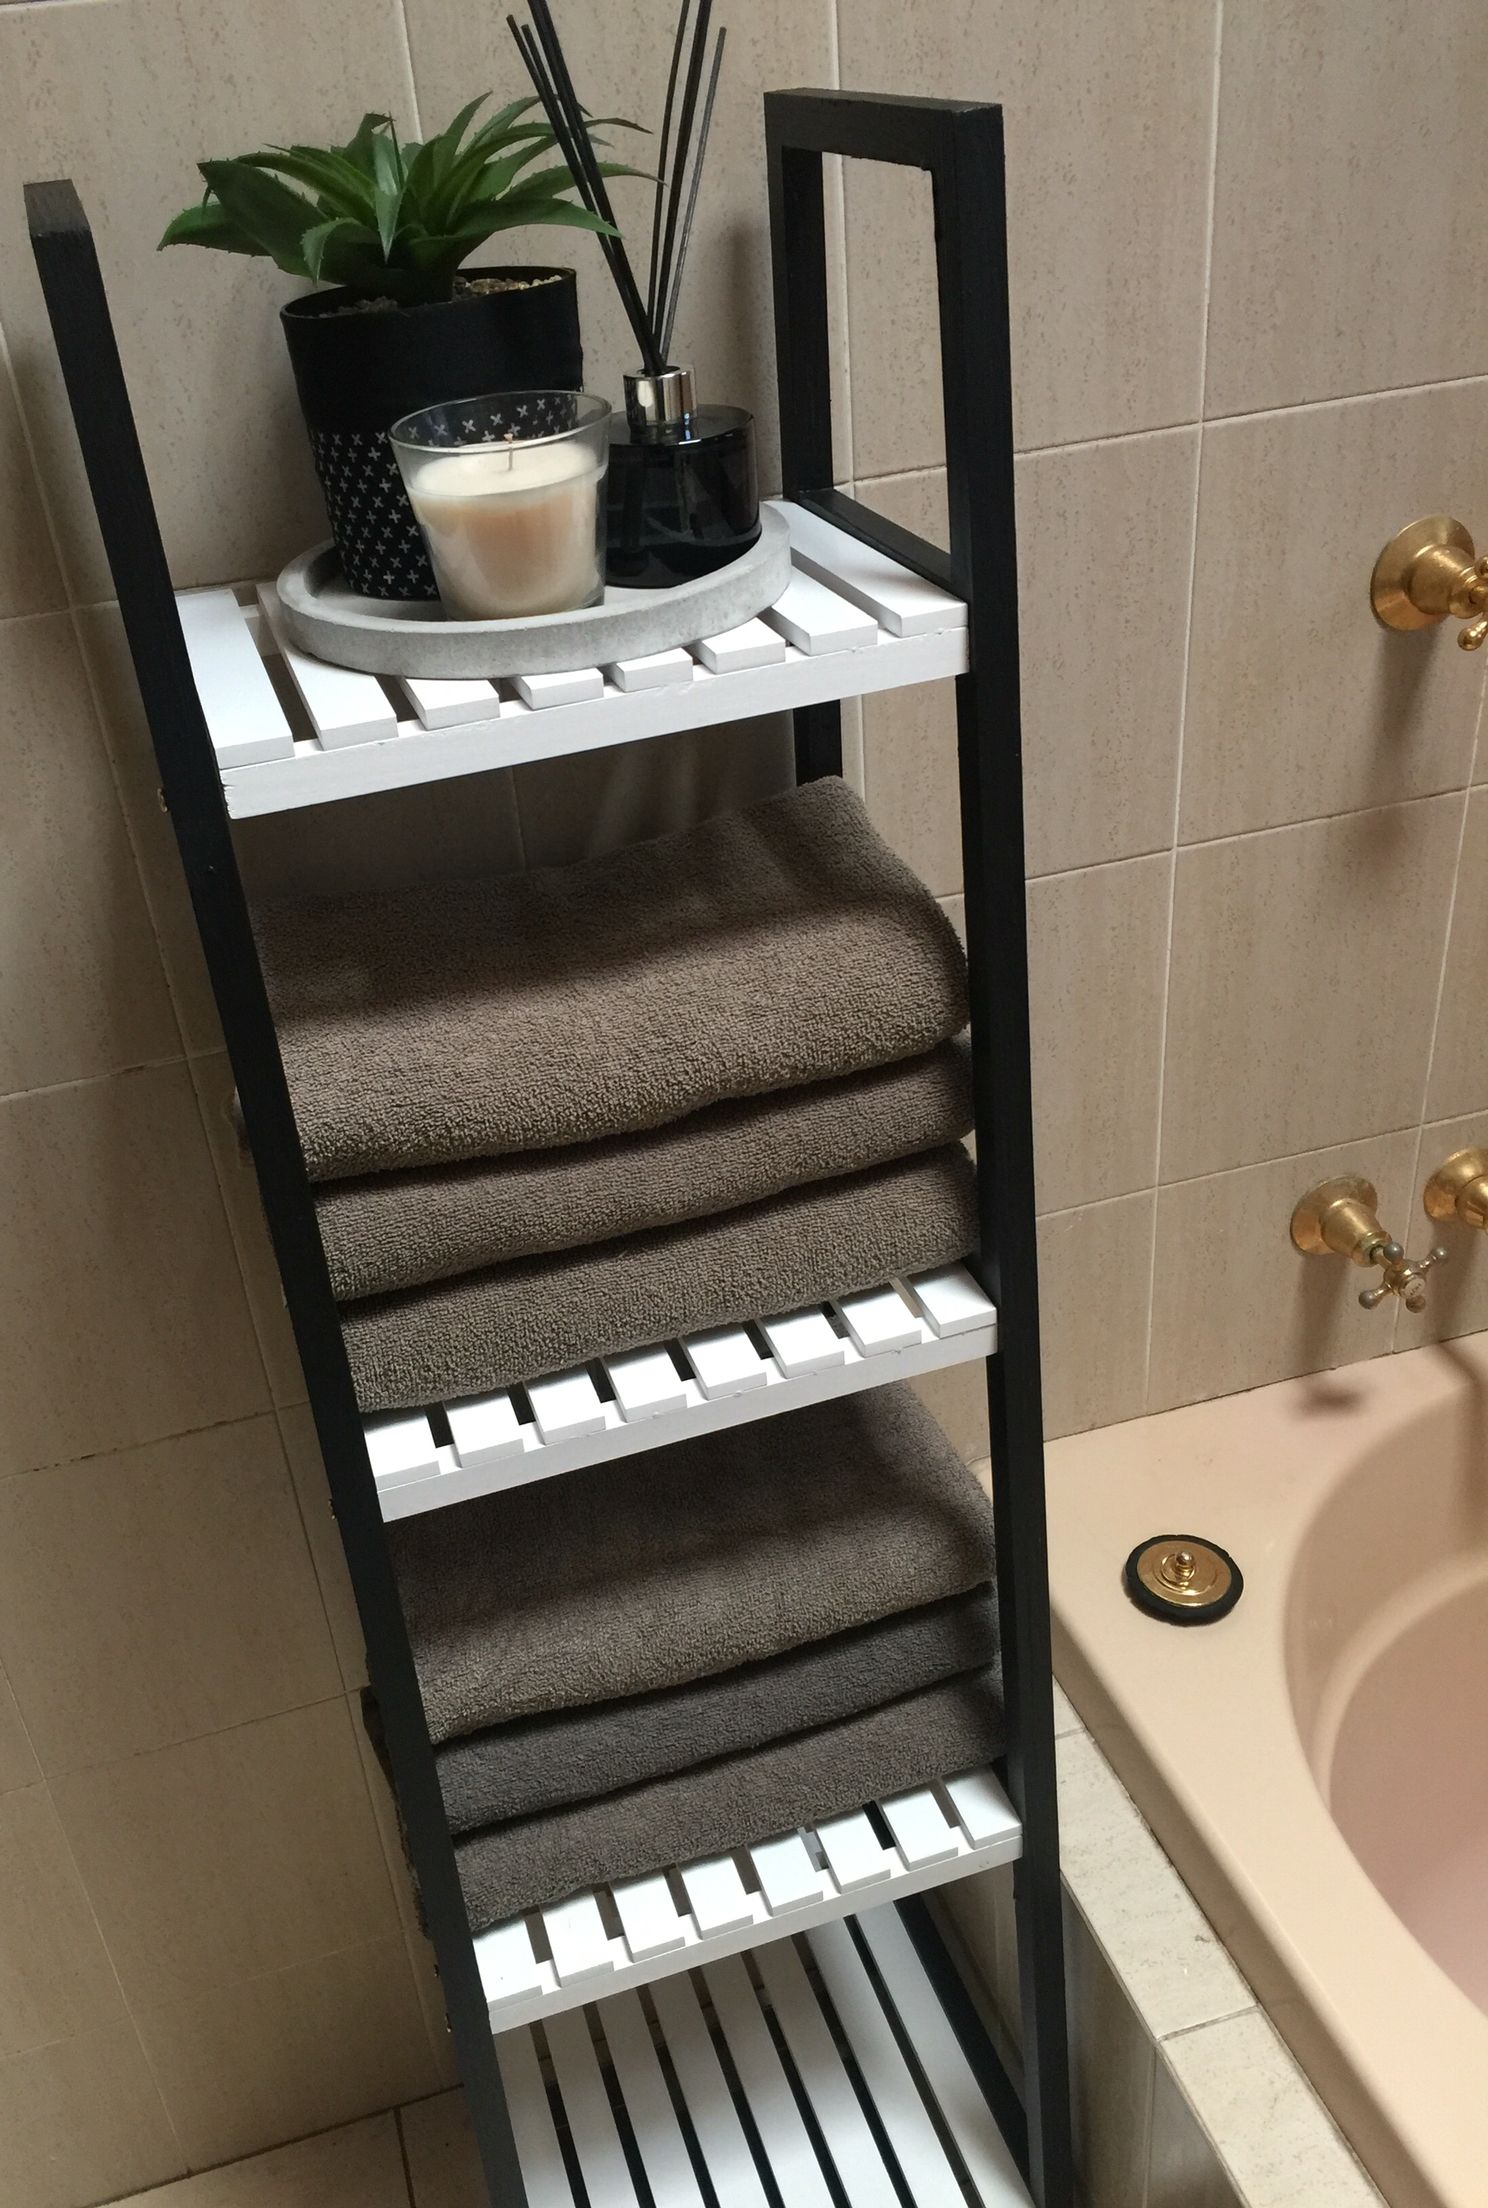 Kmart hack bathroom caddy shelves painted black and white to make it